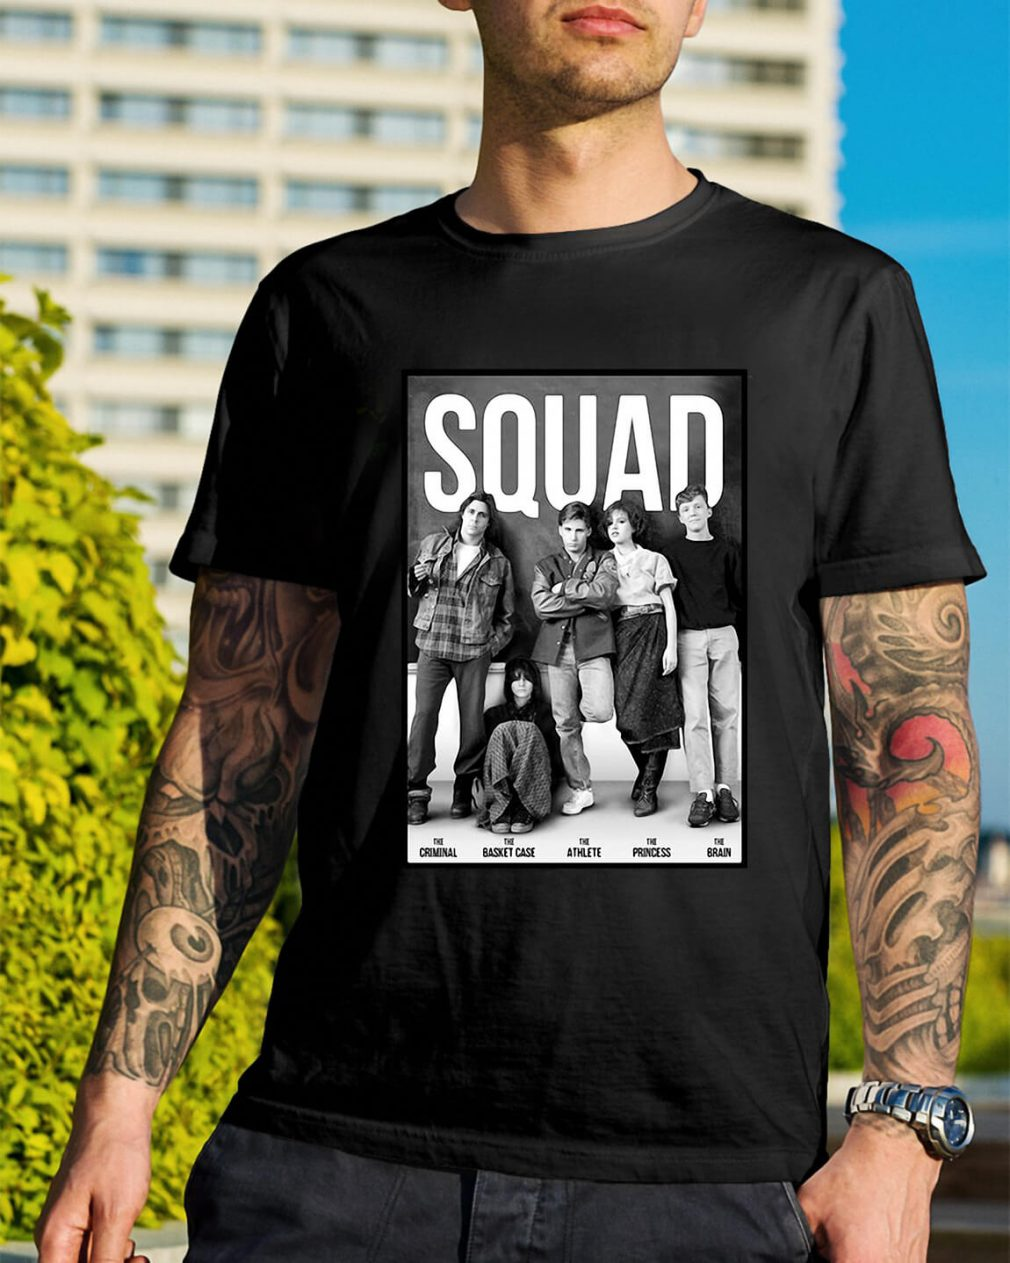 Squad Criminal Basket Athlete Case Princess and Brain shirt